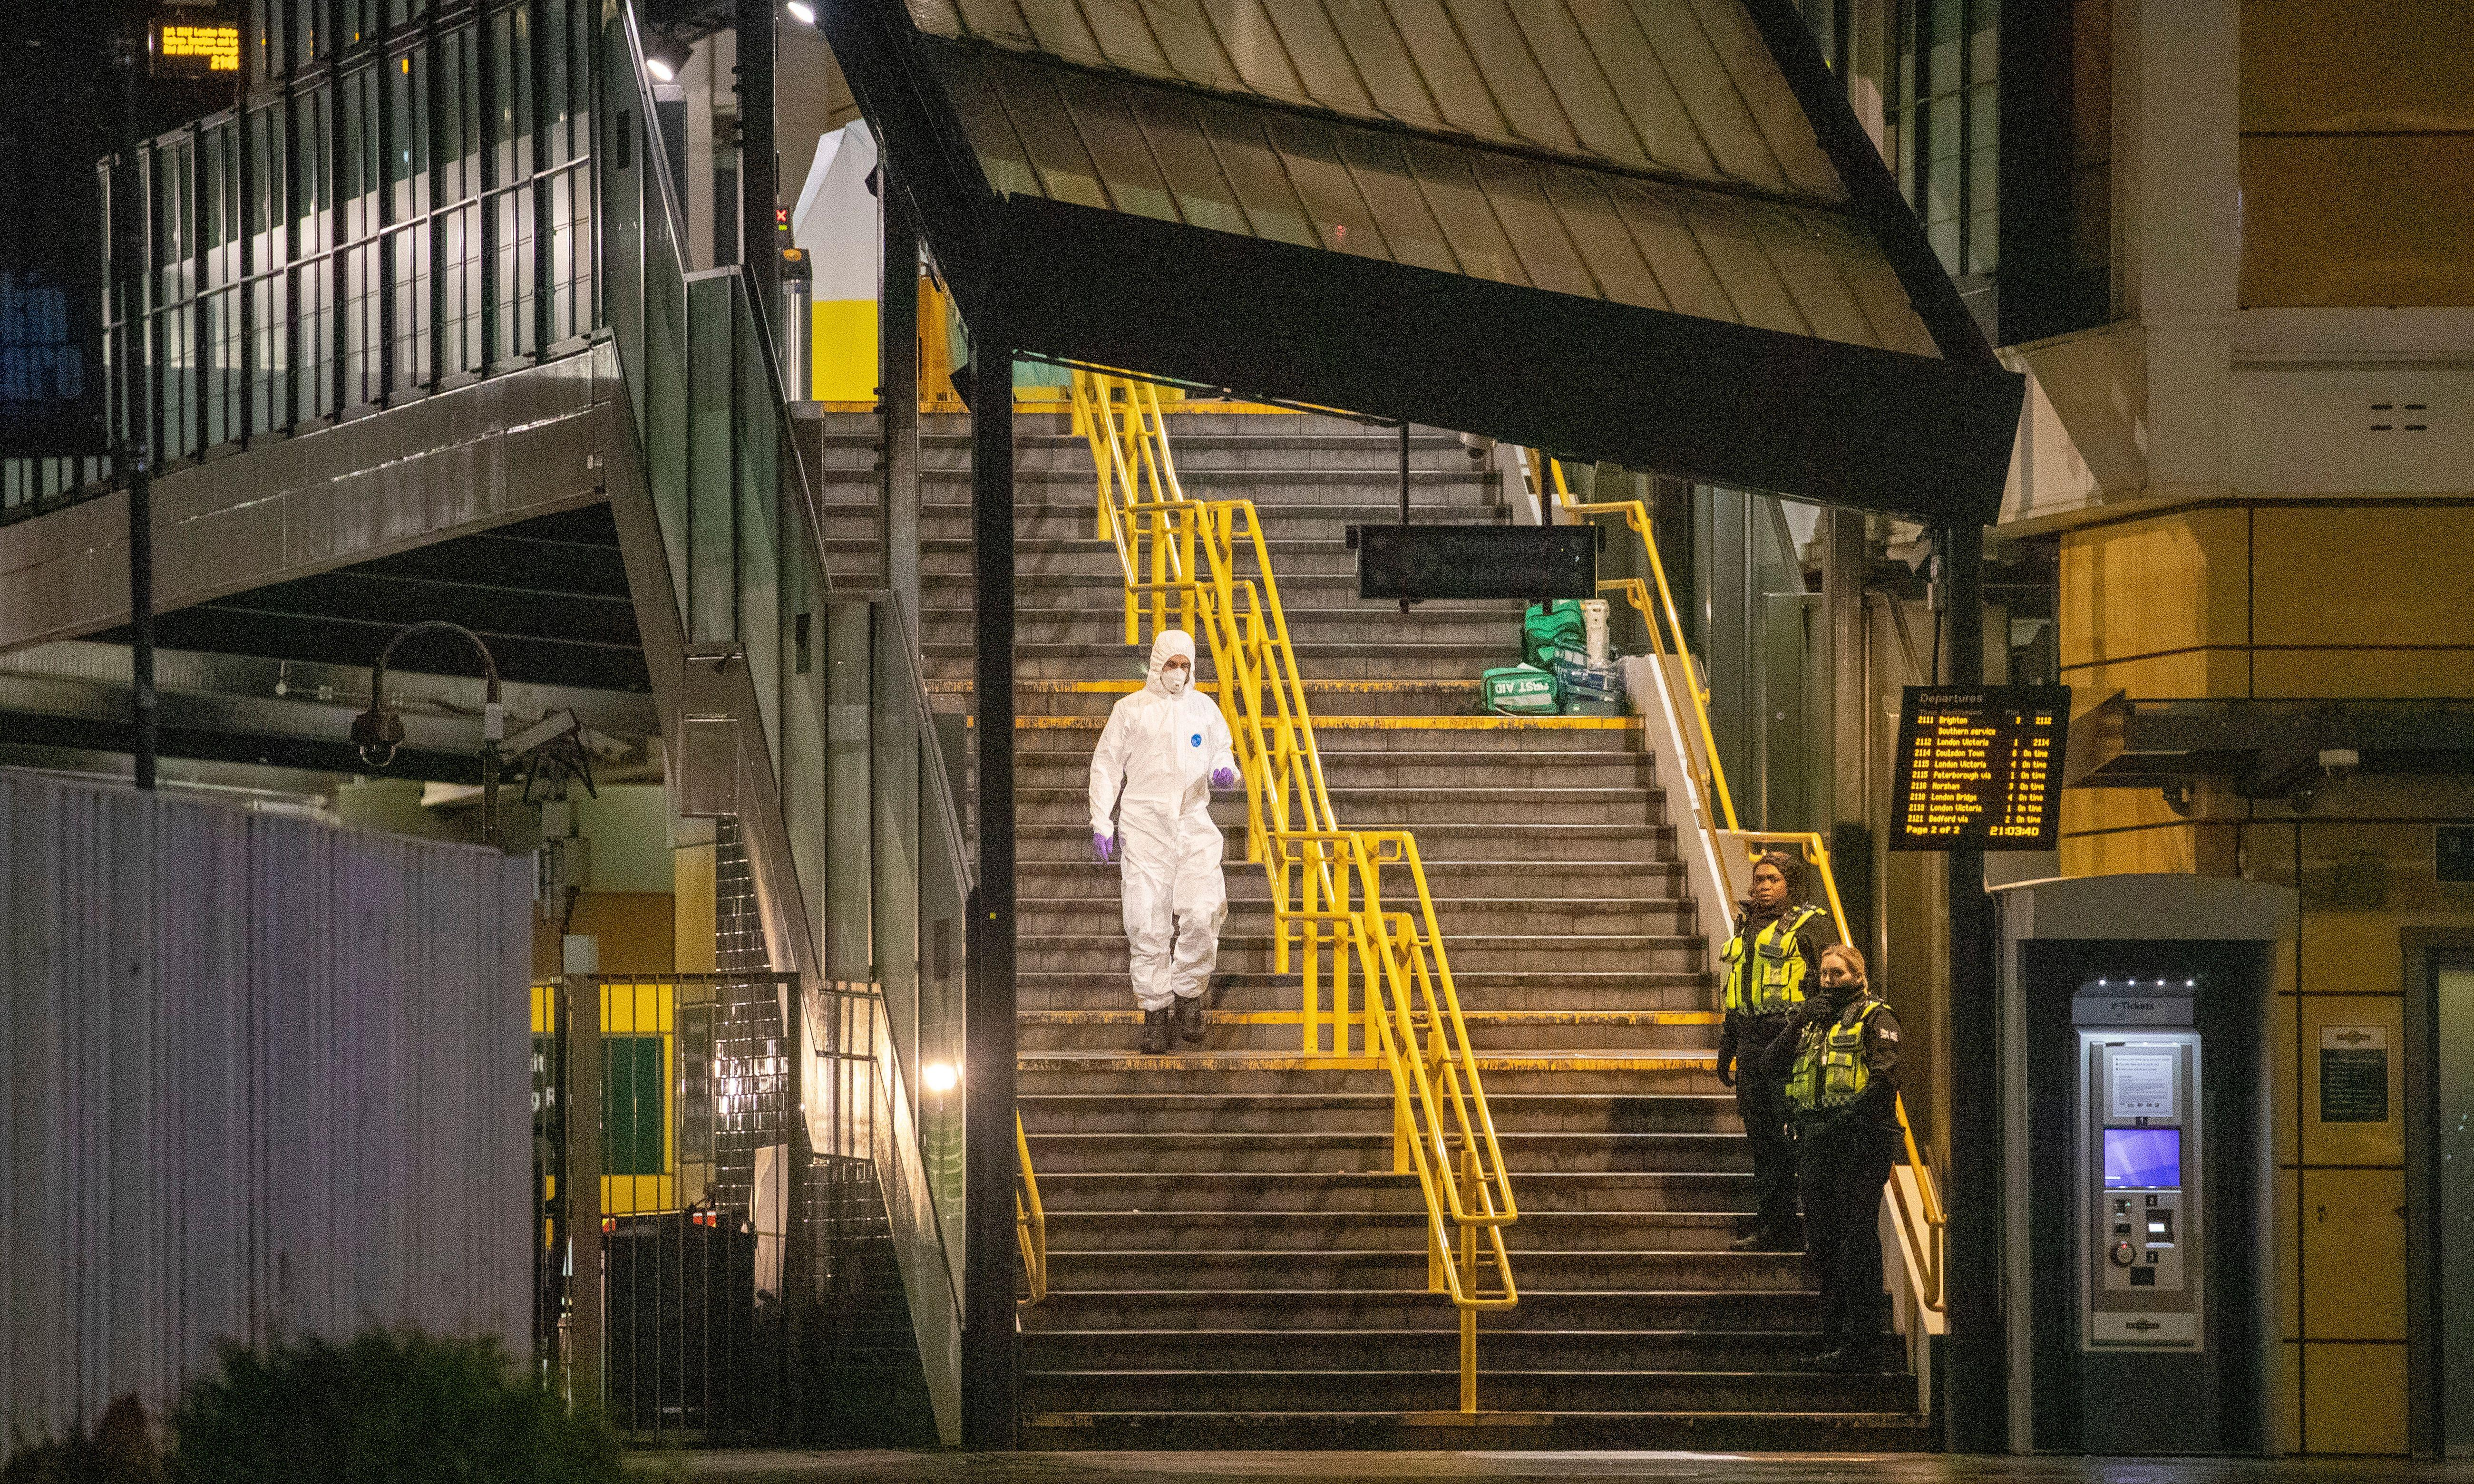 Teenager stabbed to death at busy London train station